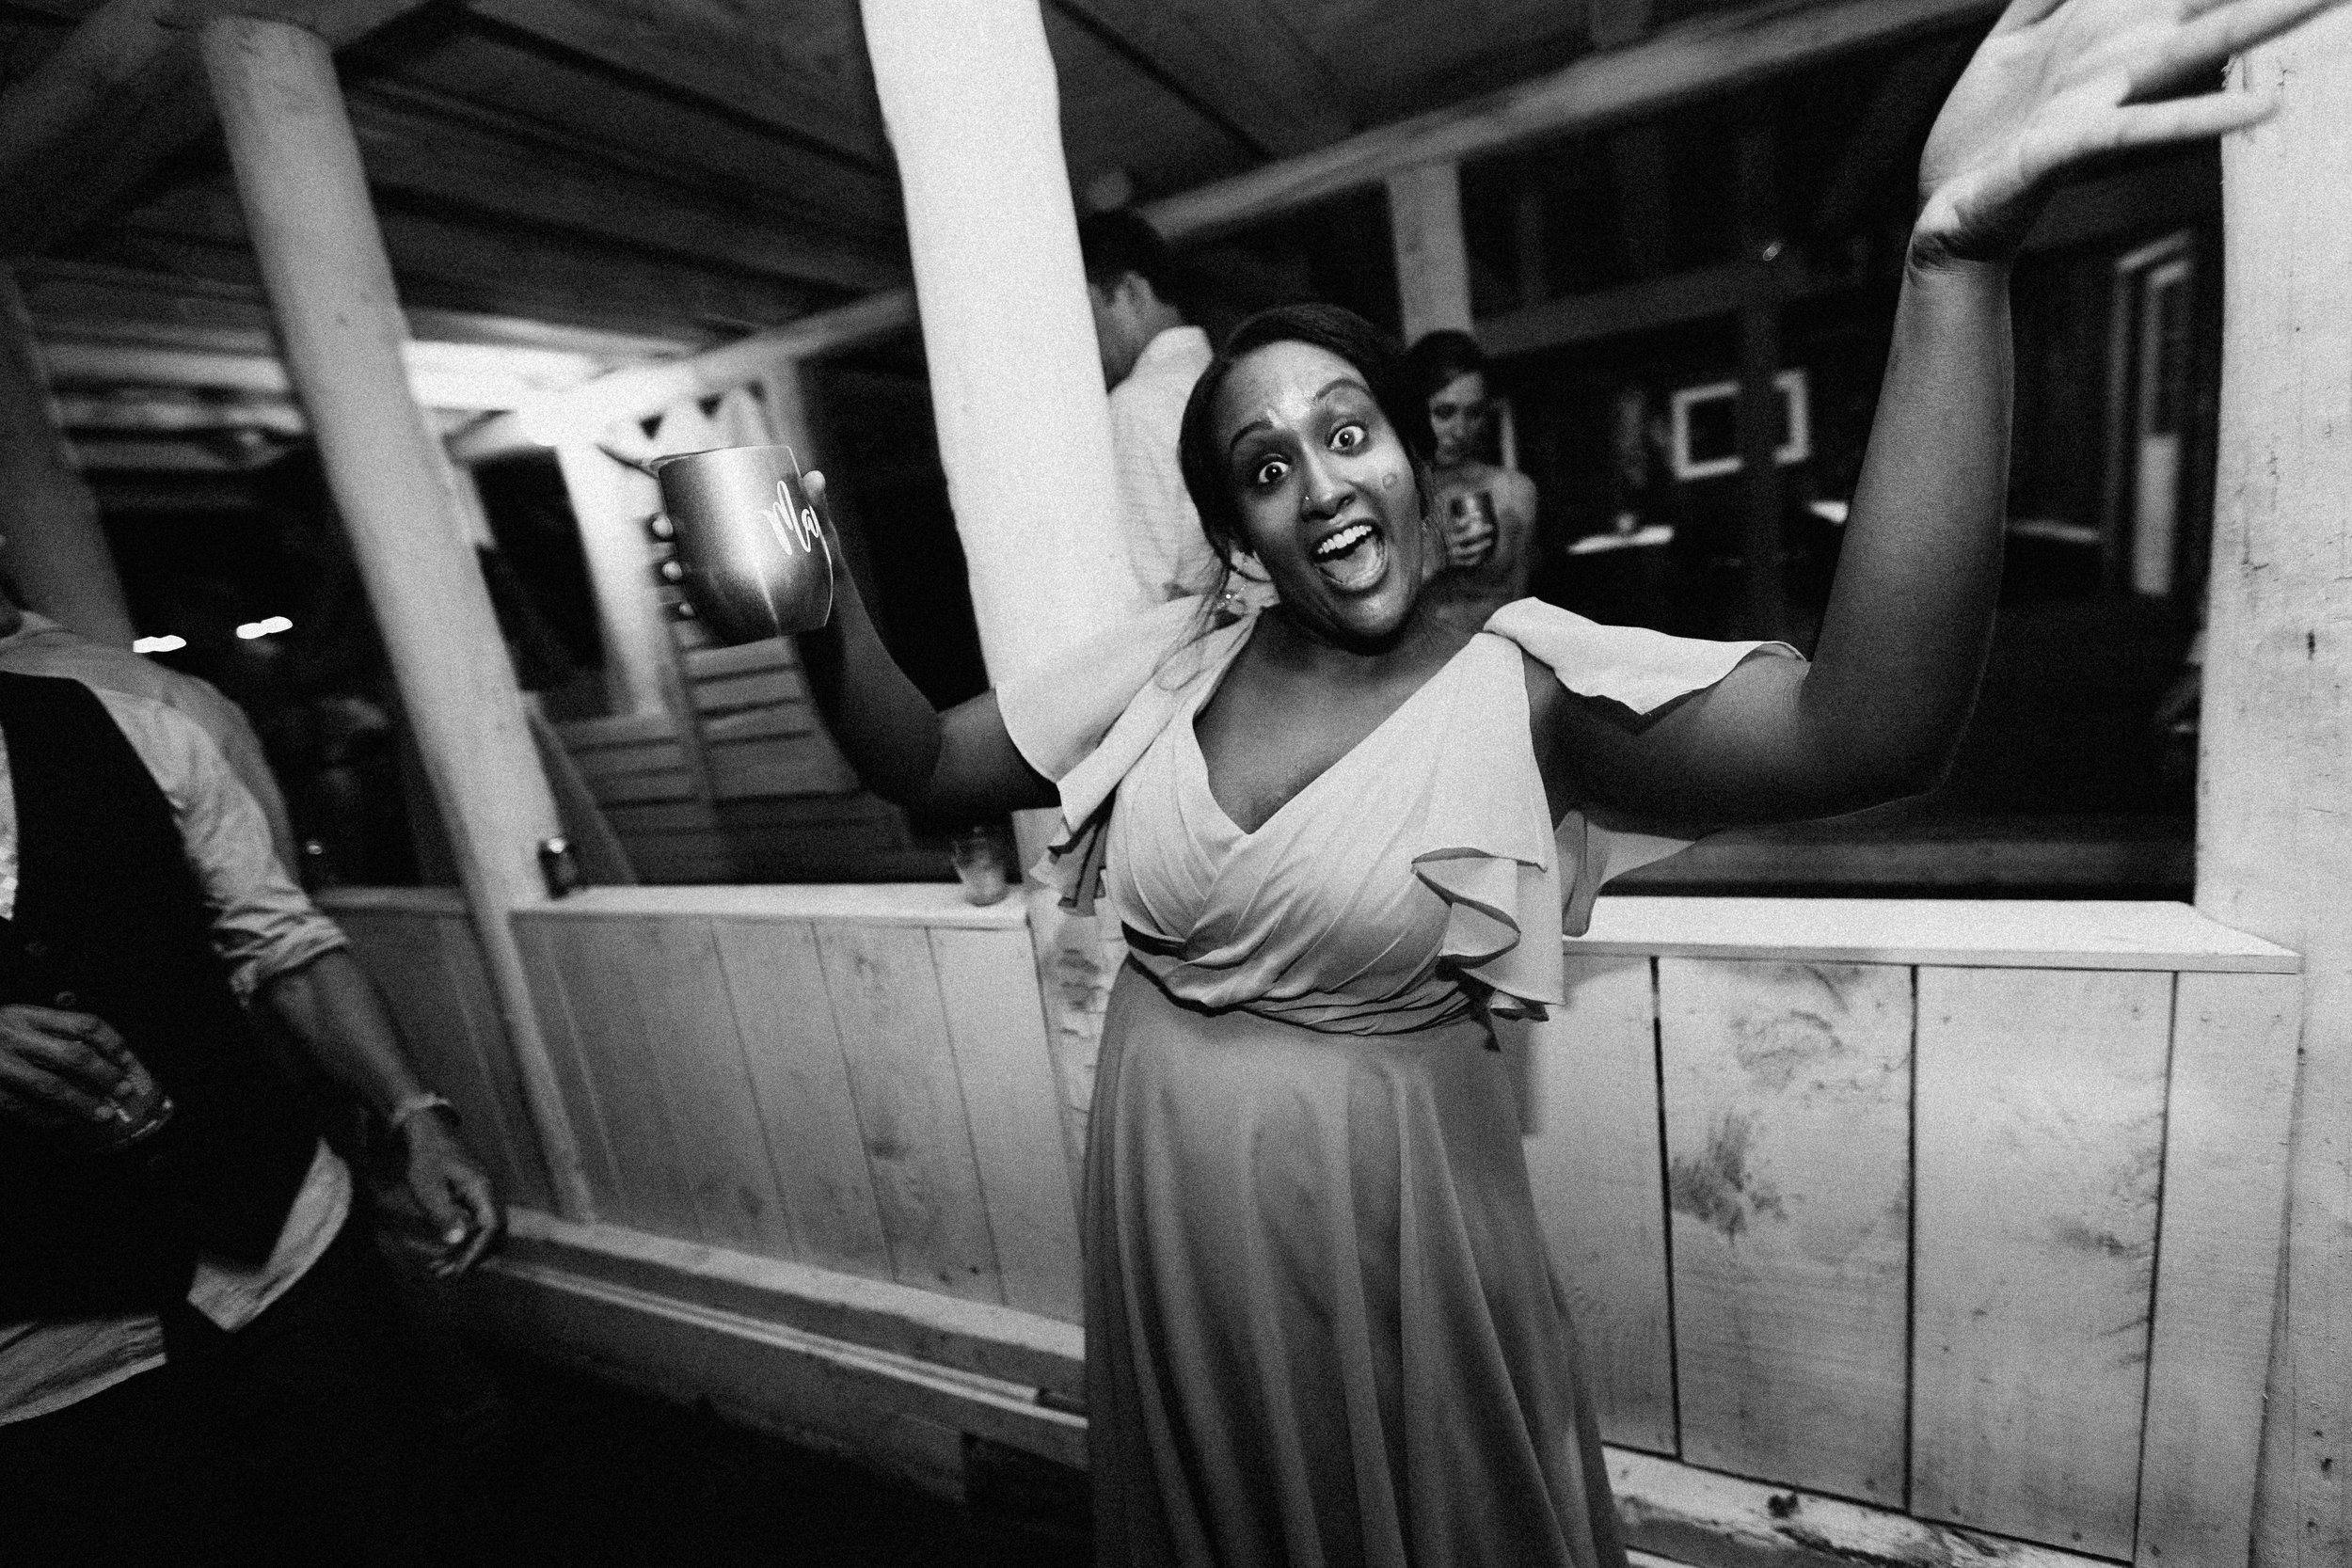 cleveland_georgia_mountain_laurel_farm_natural_classic_timeless_documentary_candid_wedding_emotional_photojournalism_river_west_2087.jpg